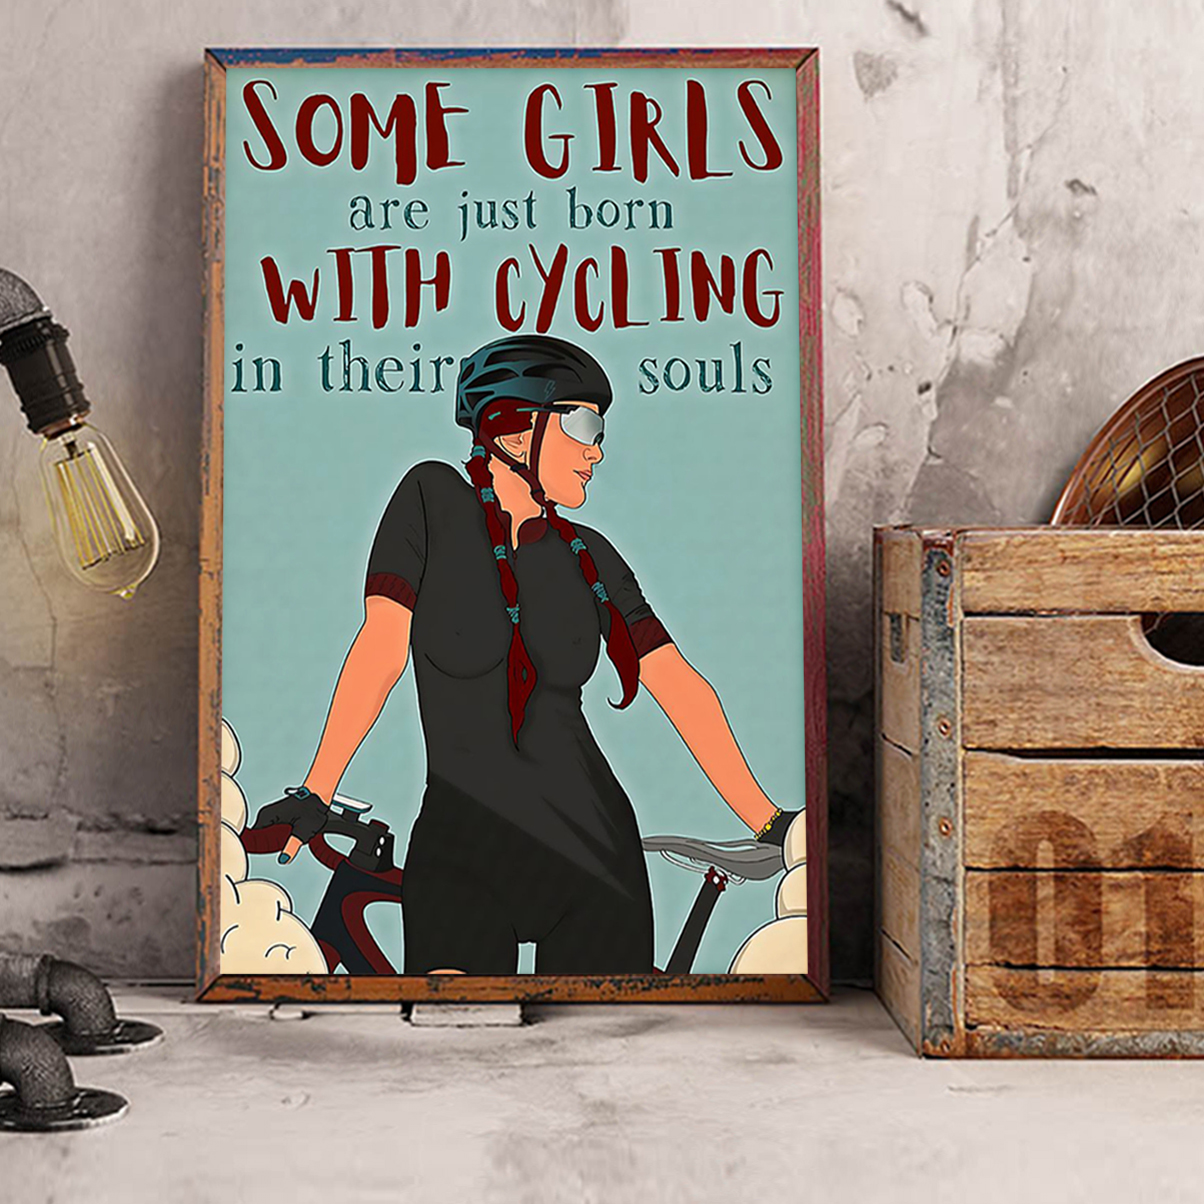 Some girls are born with cycling in their souls poster A2